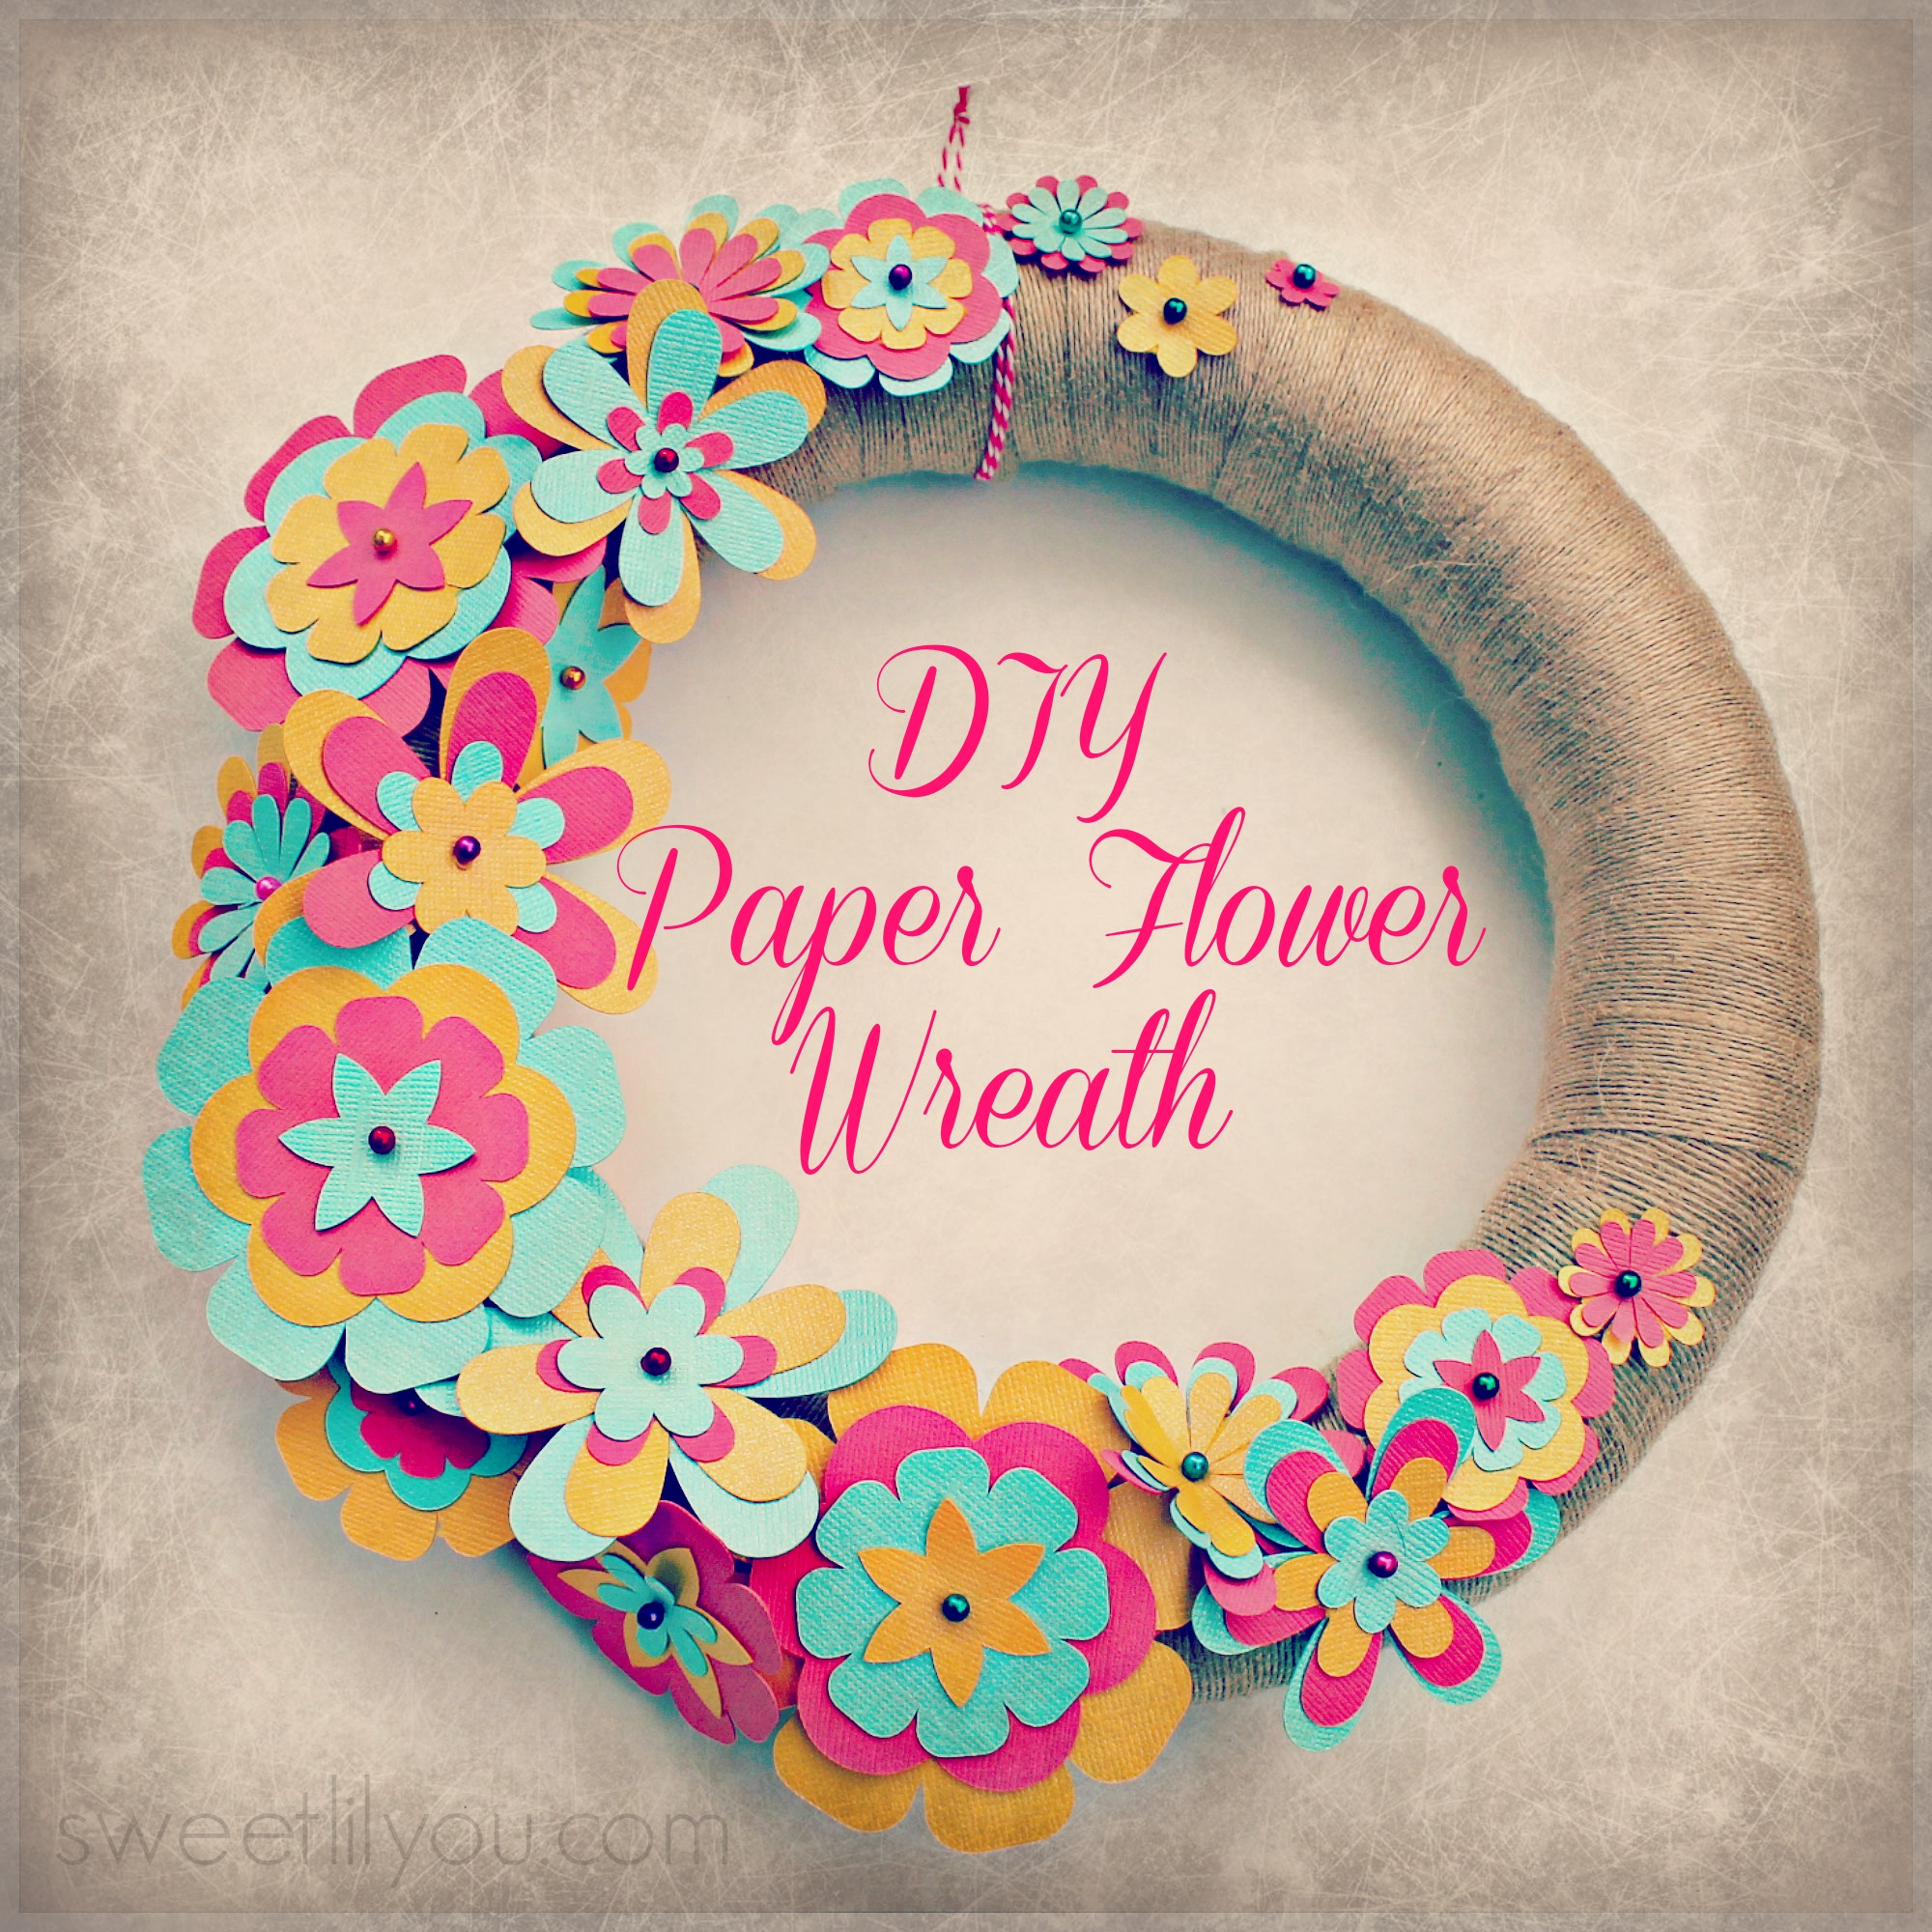 Easy diy paper flower wreath sweet lil you for Simply crafts